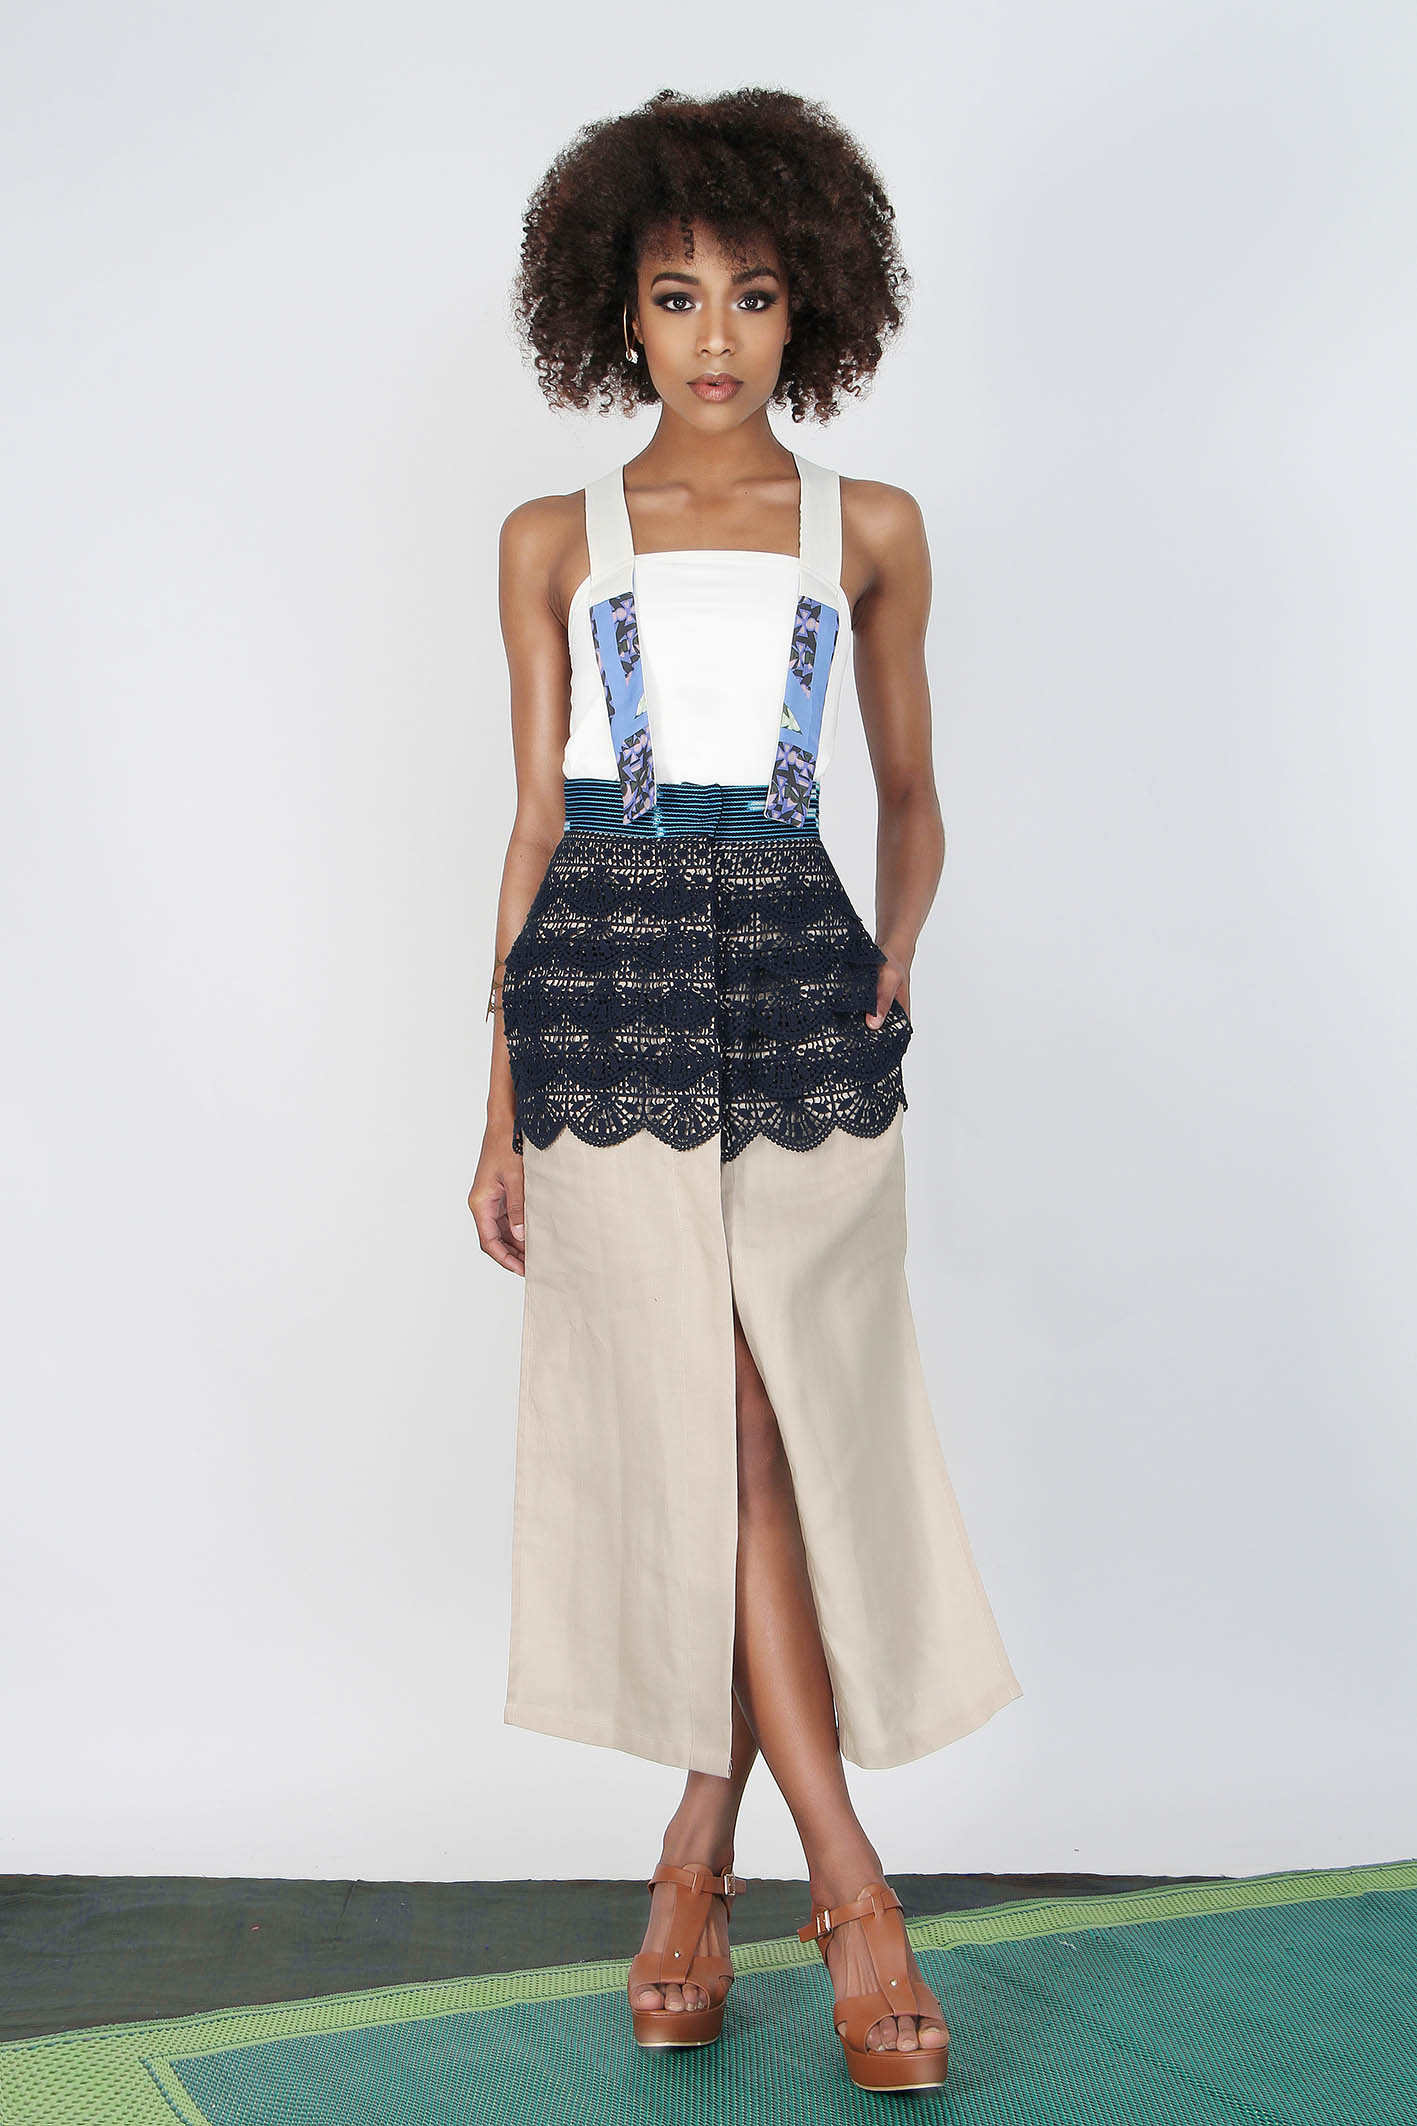 4top-sphinx-coton-jersey-skirt-lace-linen-ss17.jpg